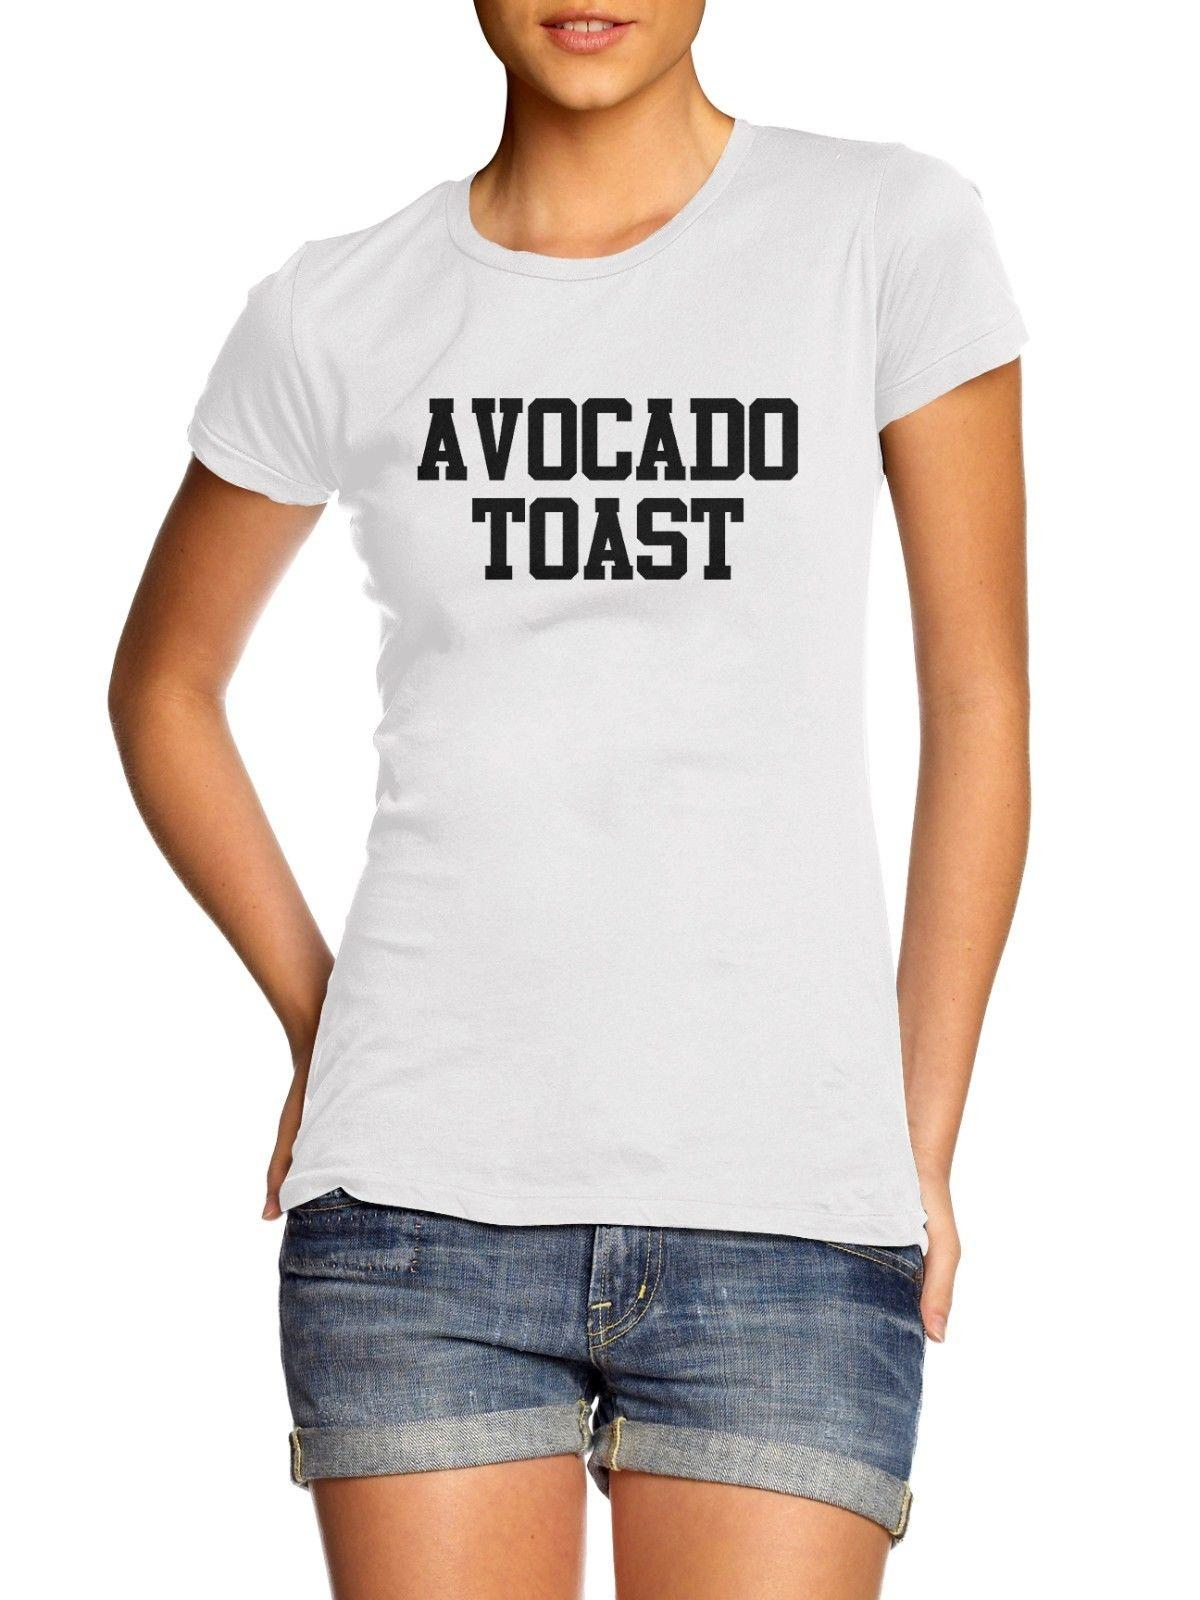 Avocado toast Slogan White T Shirt Womens Small Foodie SALE CLEARANCE A4 Funny free shipping Unisex tee